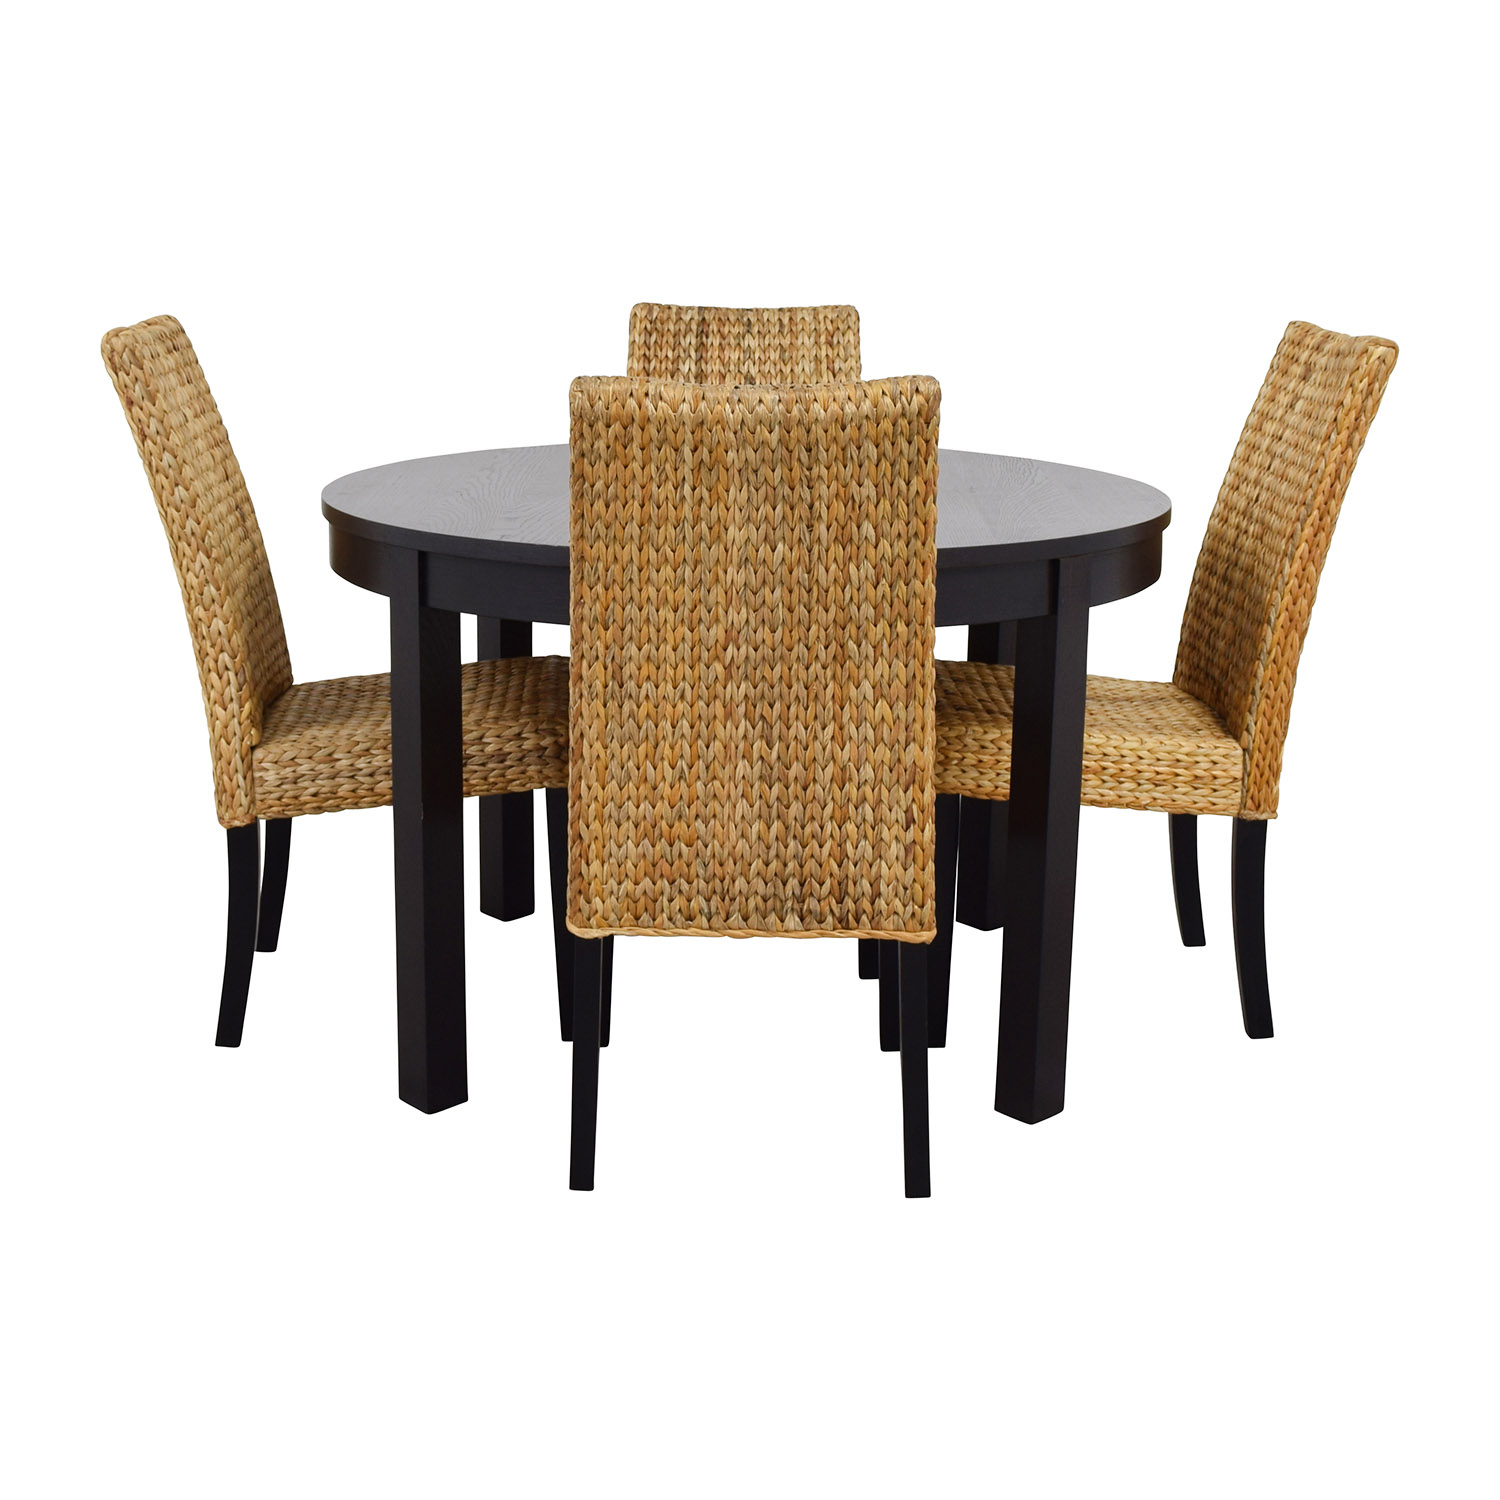 66 off macy 39 s ikea round black dining table set with for Black dining table set